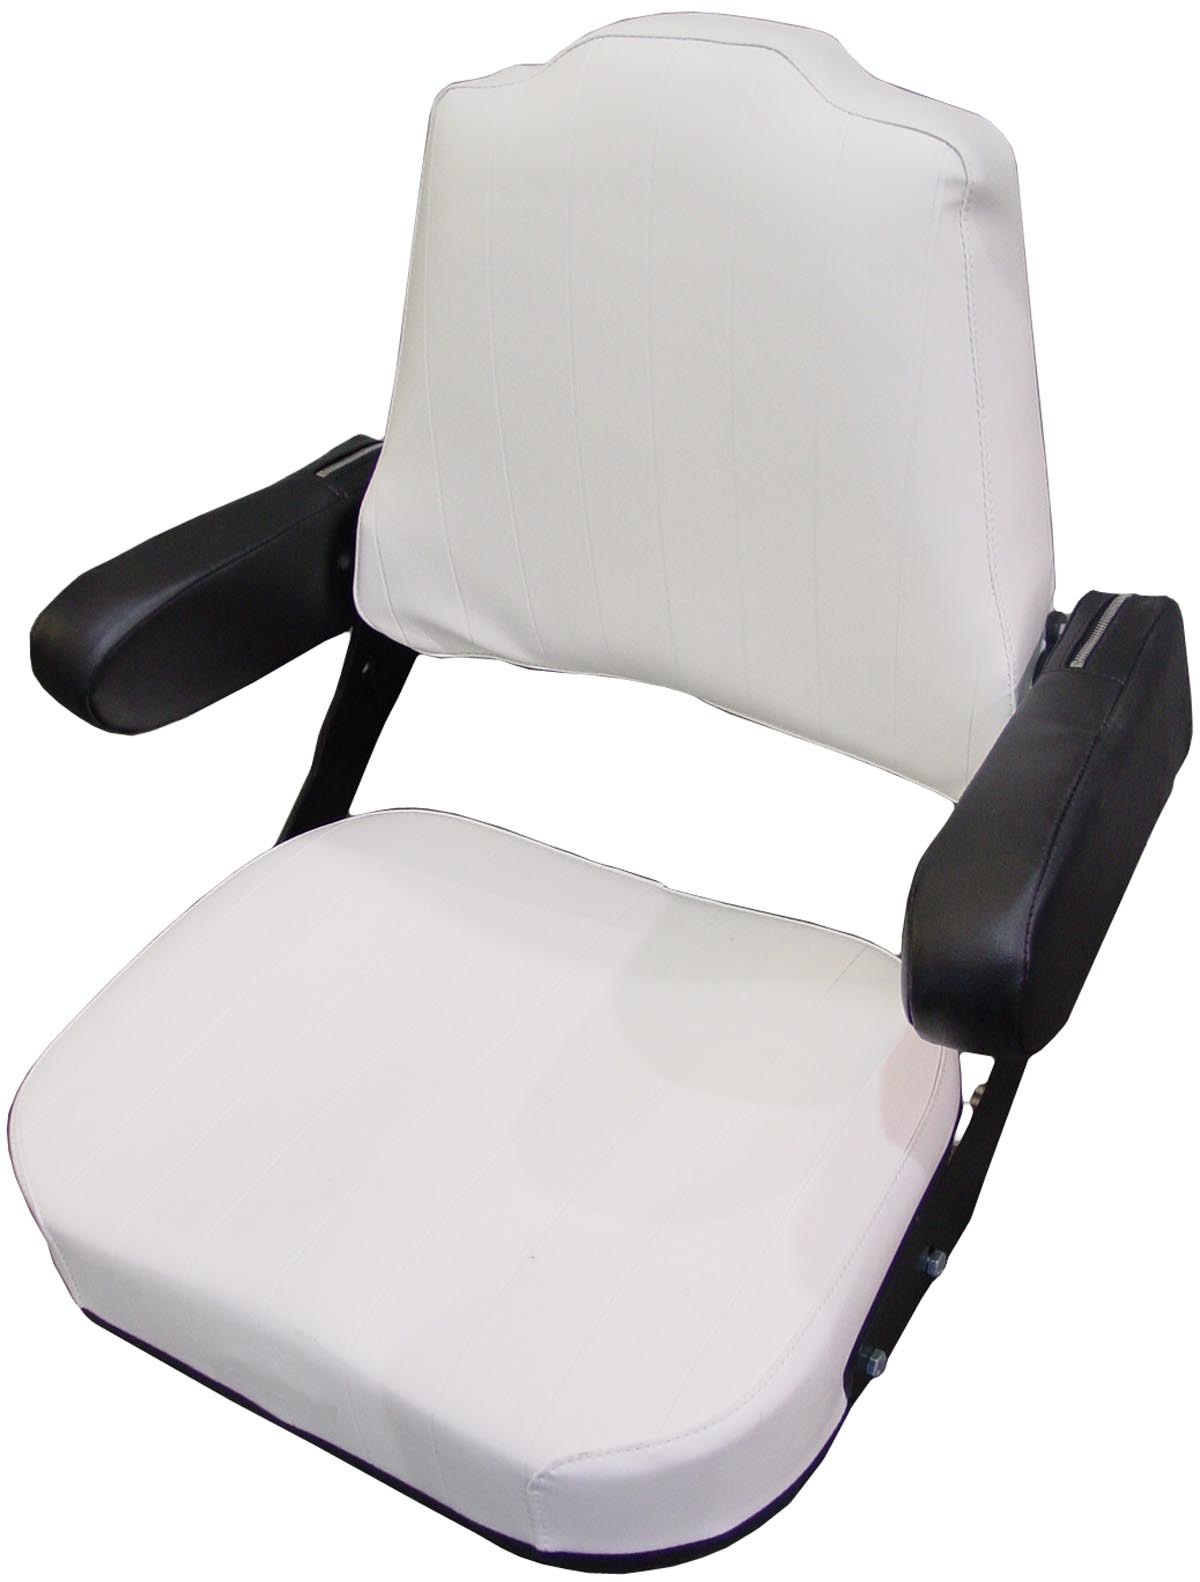 Metal Tractor Seat Replacement : Seat assembly with armrests restoration quality farmall